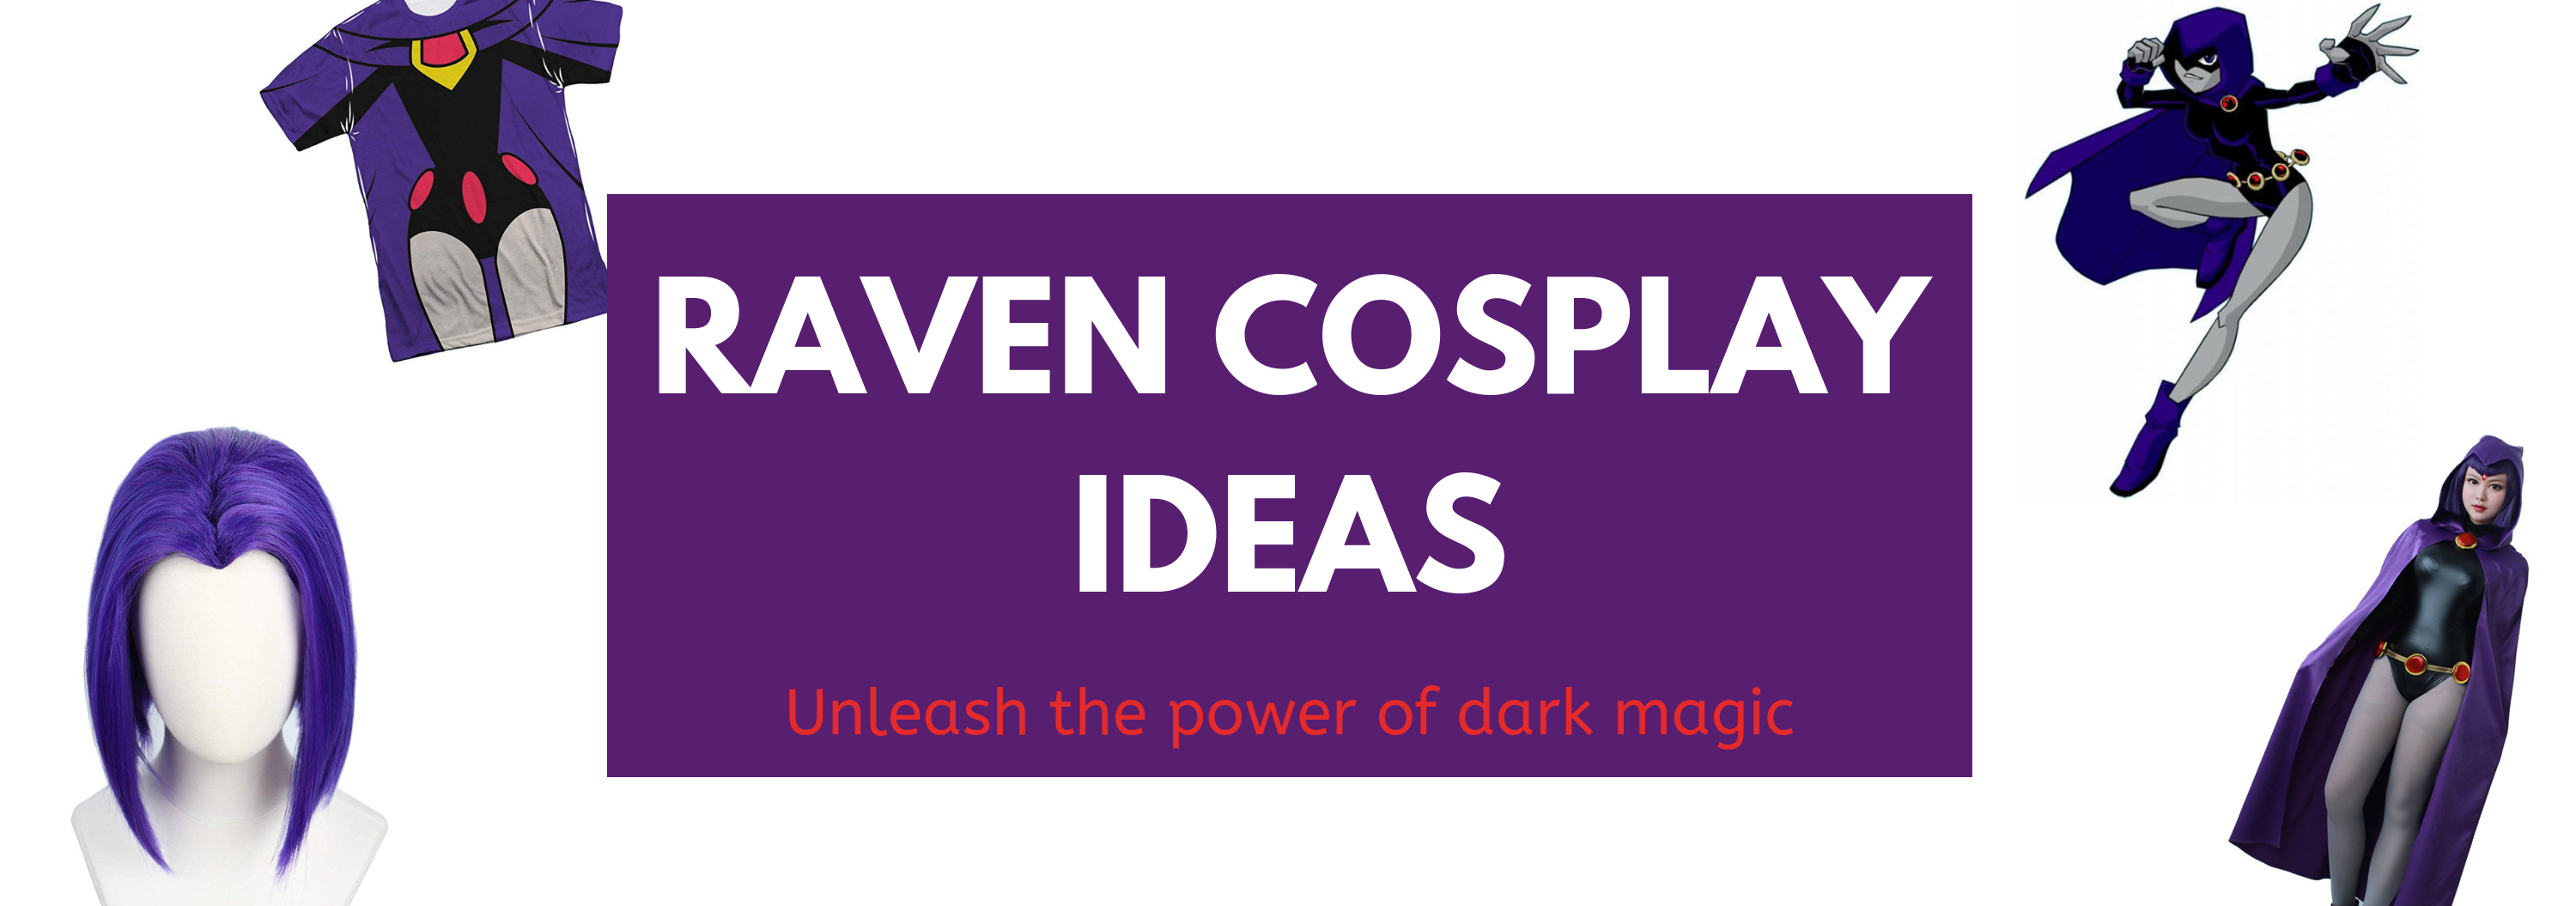 Raven cosplay, Everything you need to get that Raven cosplay ready